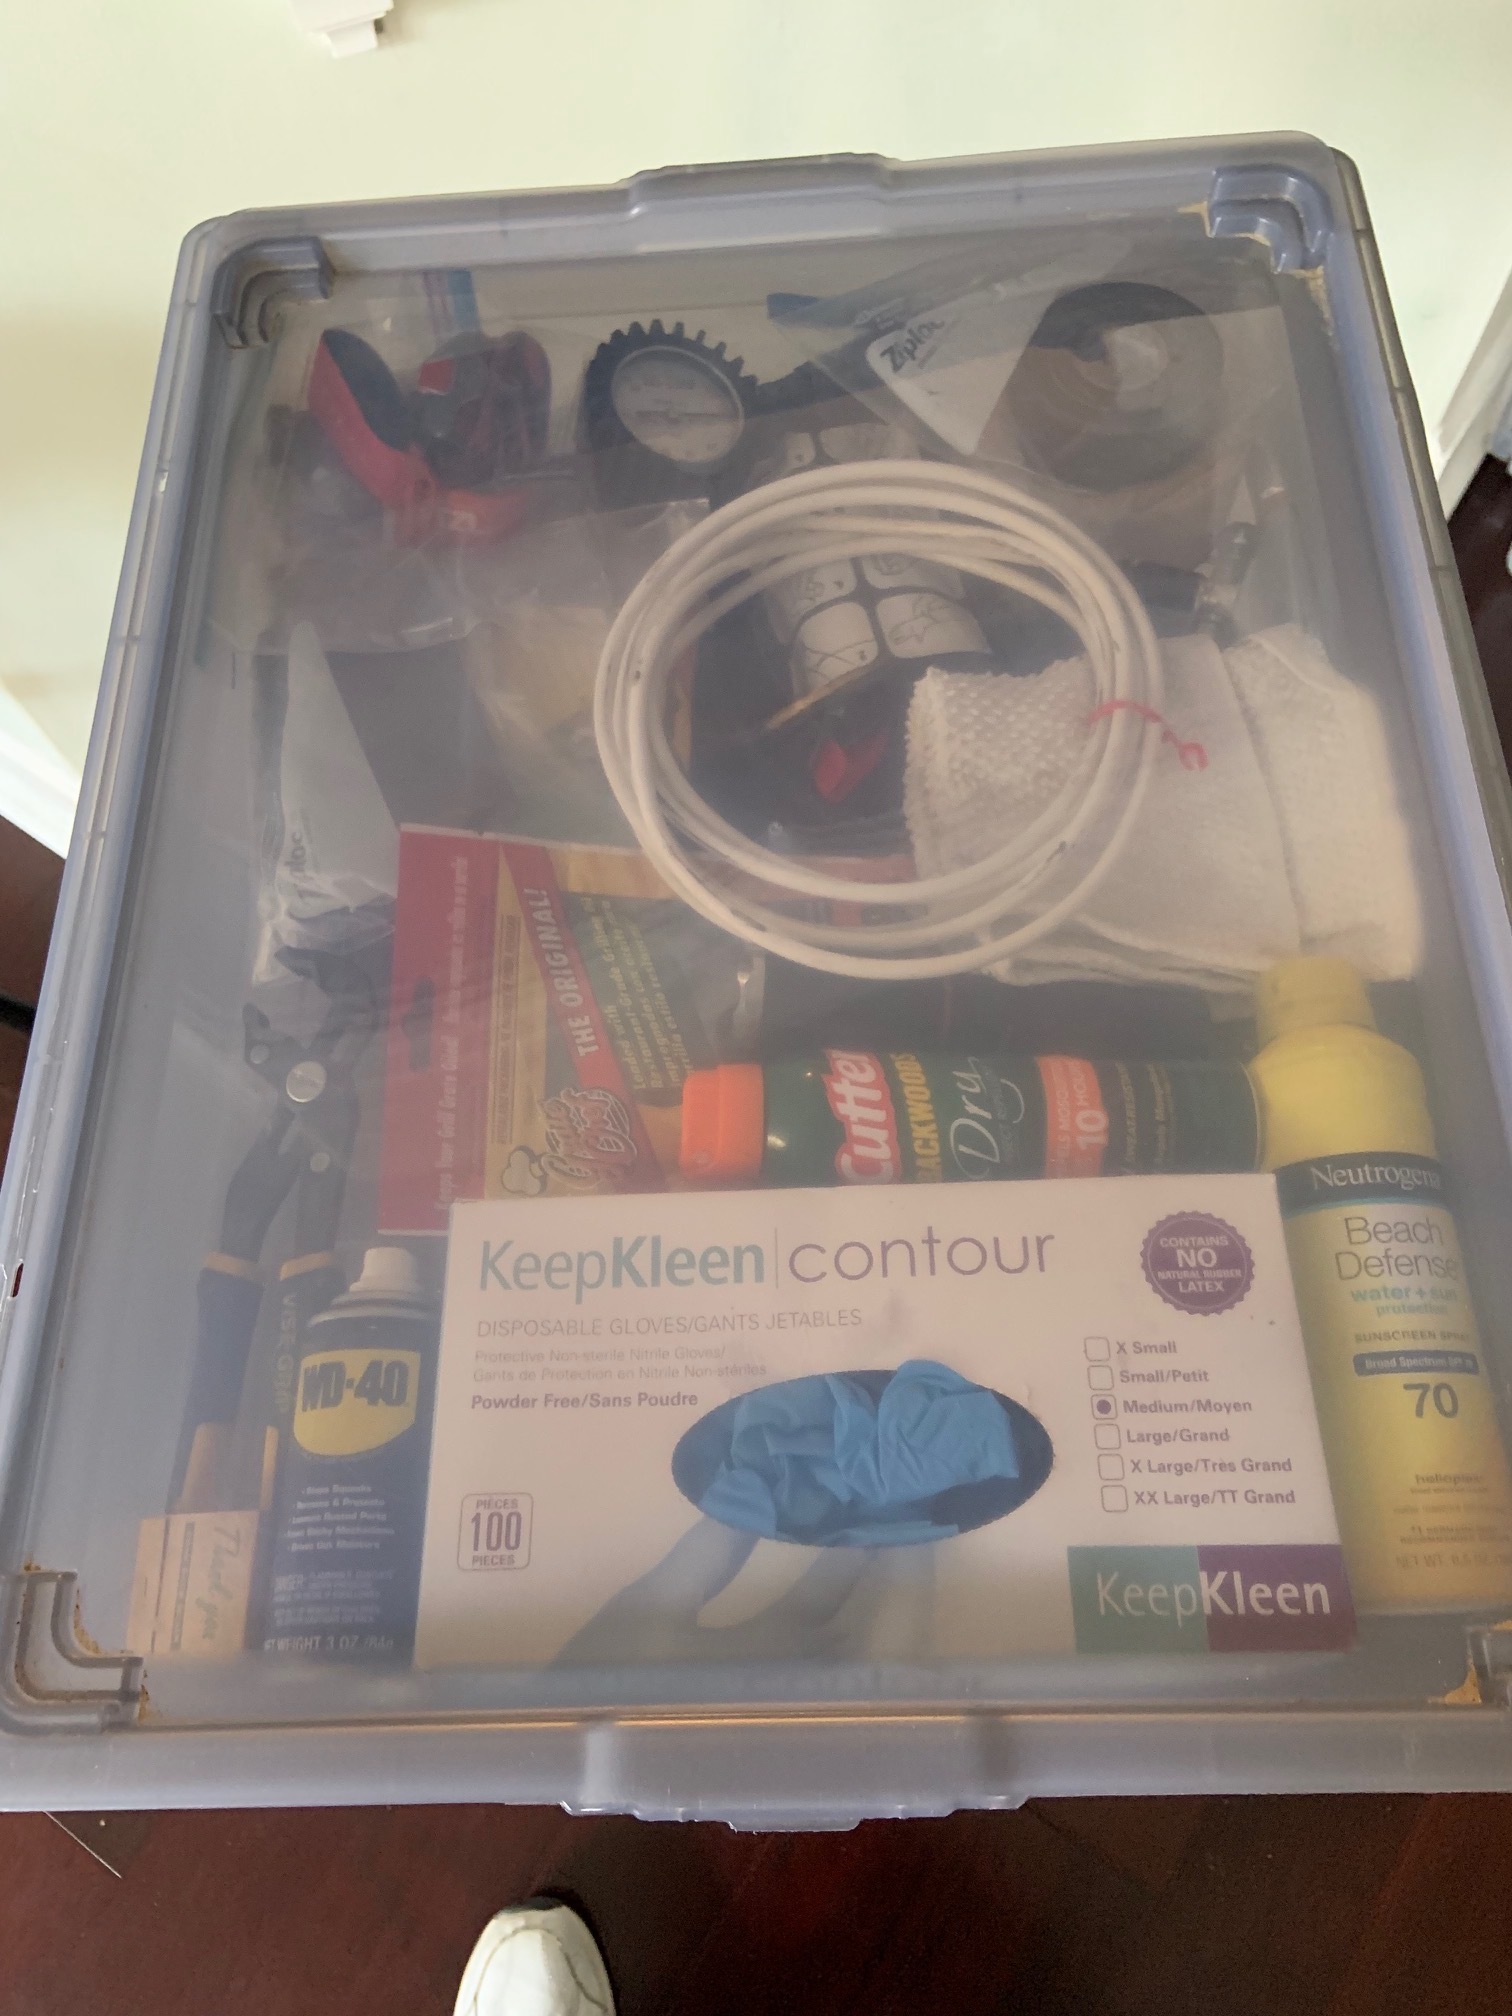 First box nearly done, two things are here temporarily and a couple are missing. We do have extensive check lists to keep track. This is the shallow box that slides in a frame and is under the water hose, power cord, filter and electric surge protector.